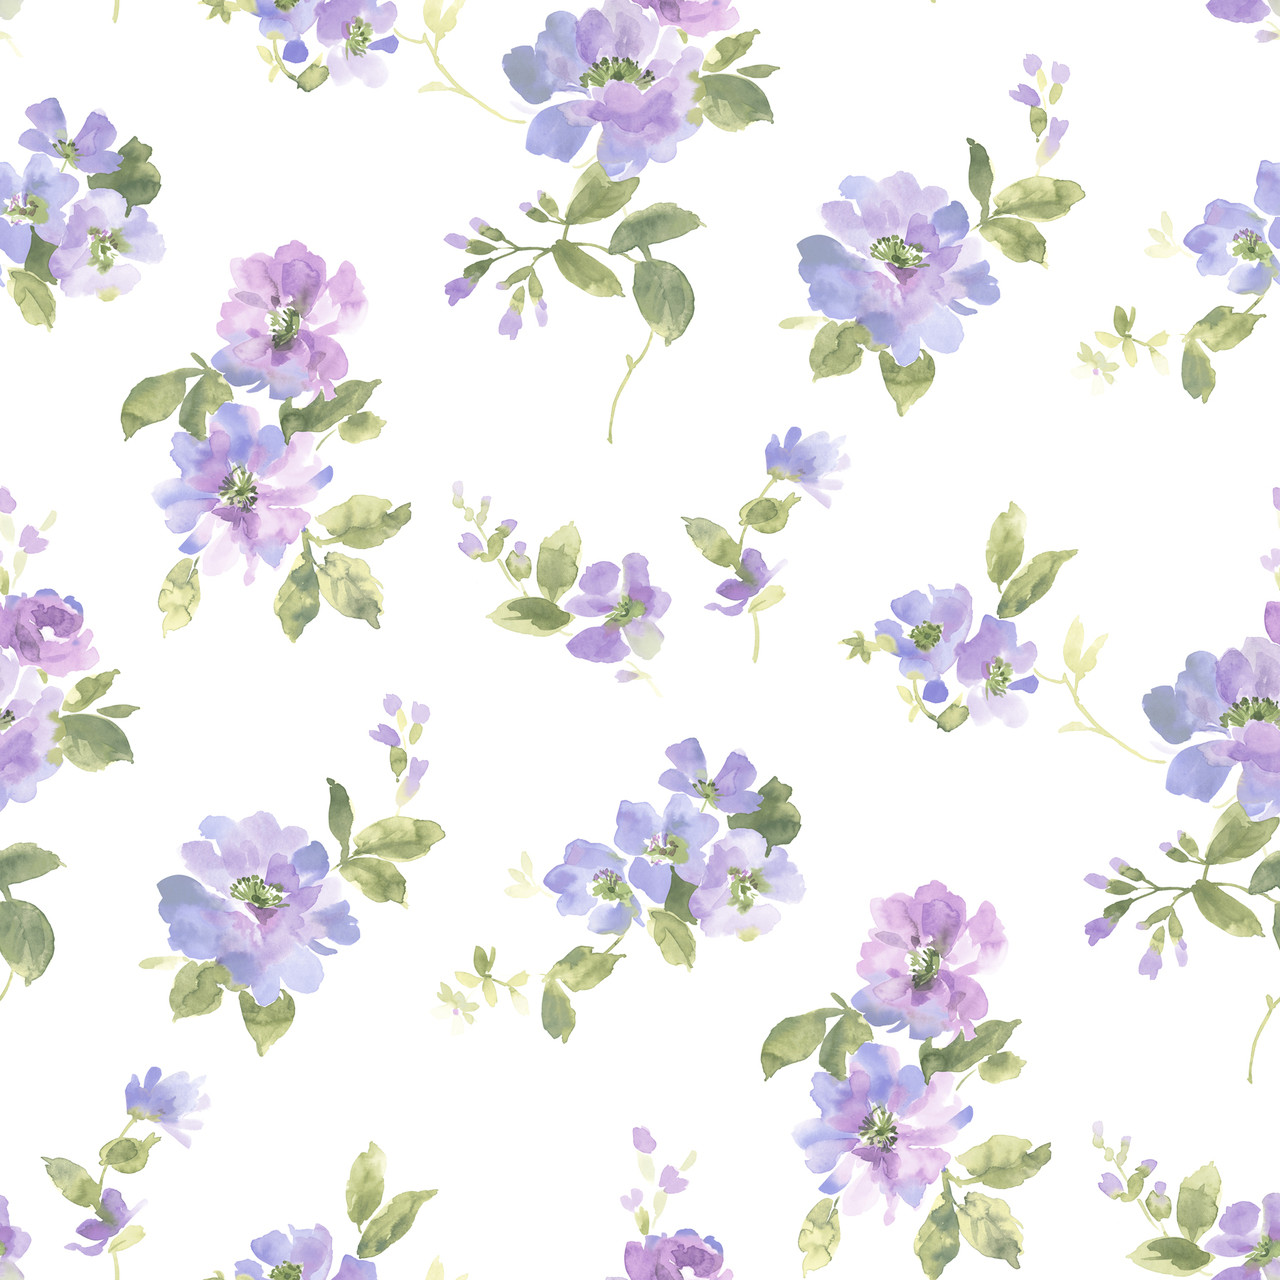 Dlr54593 Captiva Purple Watercolor Floral Wallpaper